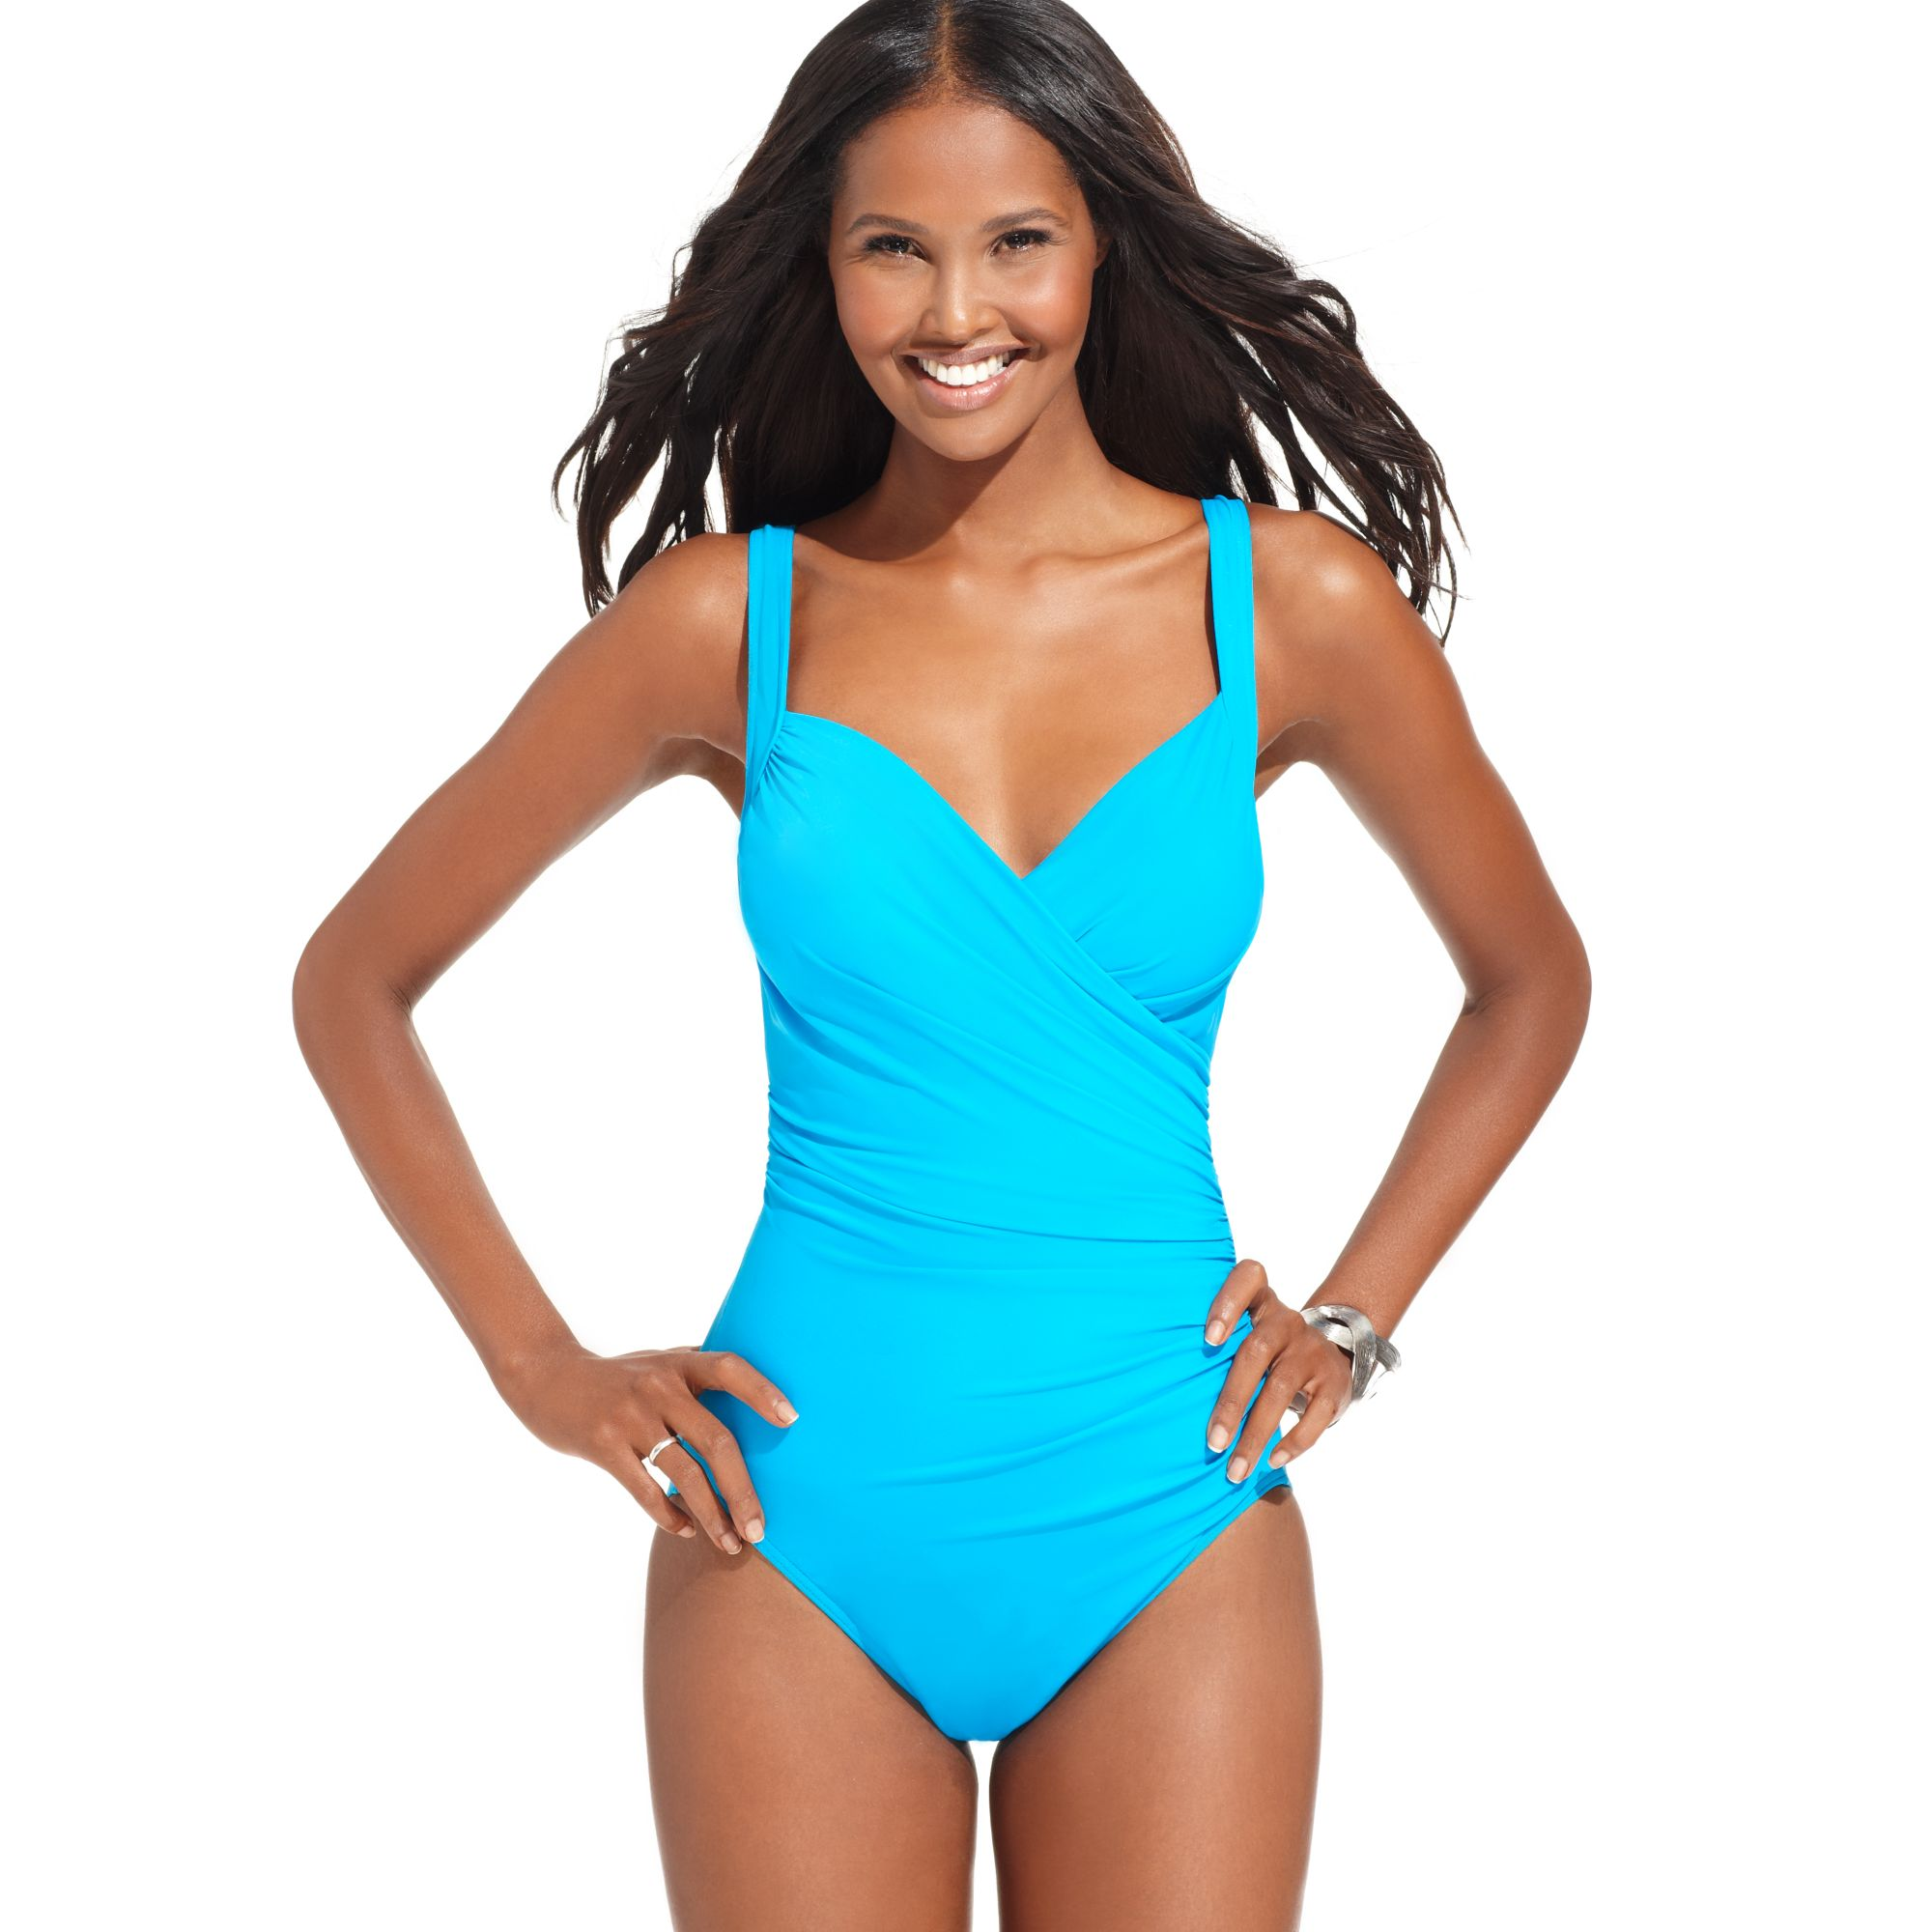 10bdd9c2964ce Miraclesuit Sanibel Ruched Tummy Control One Piece in Blue - Lyst